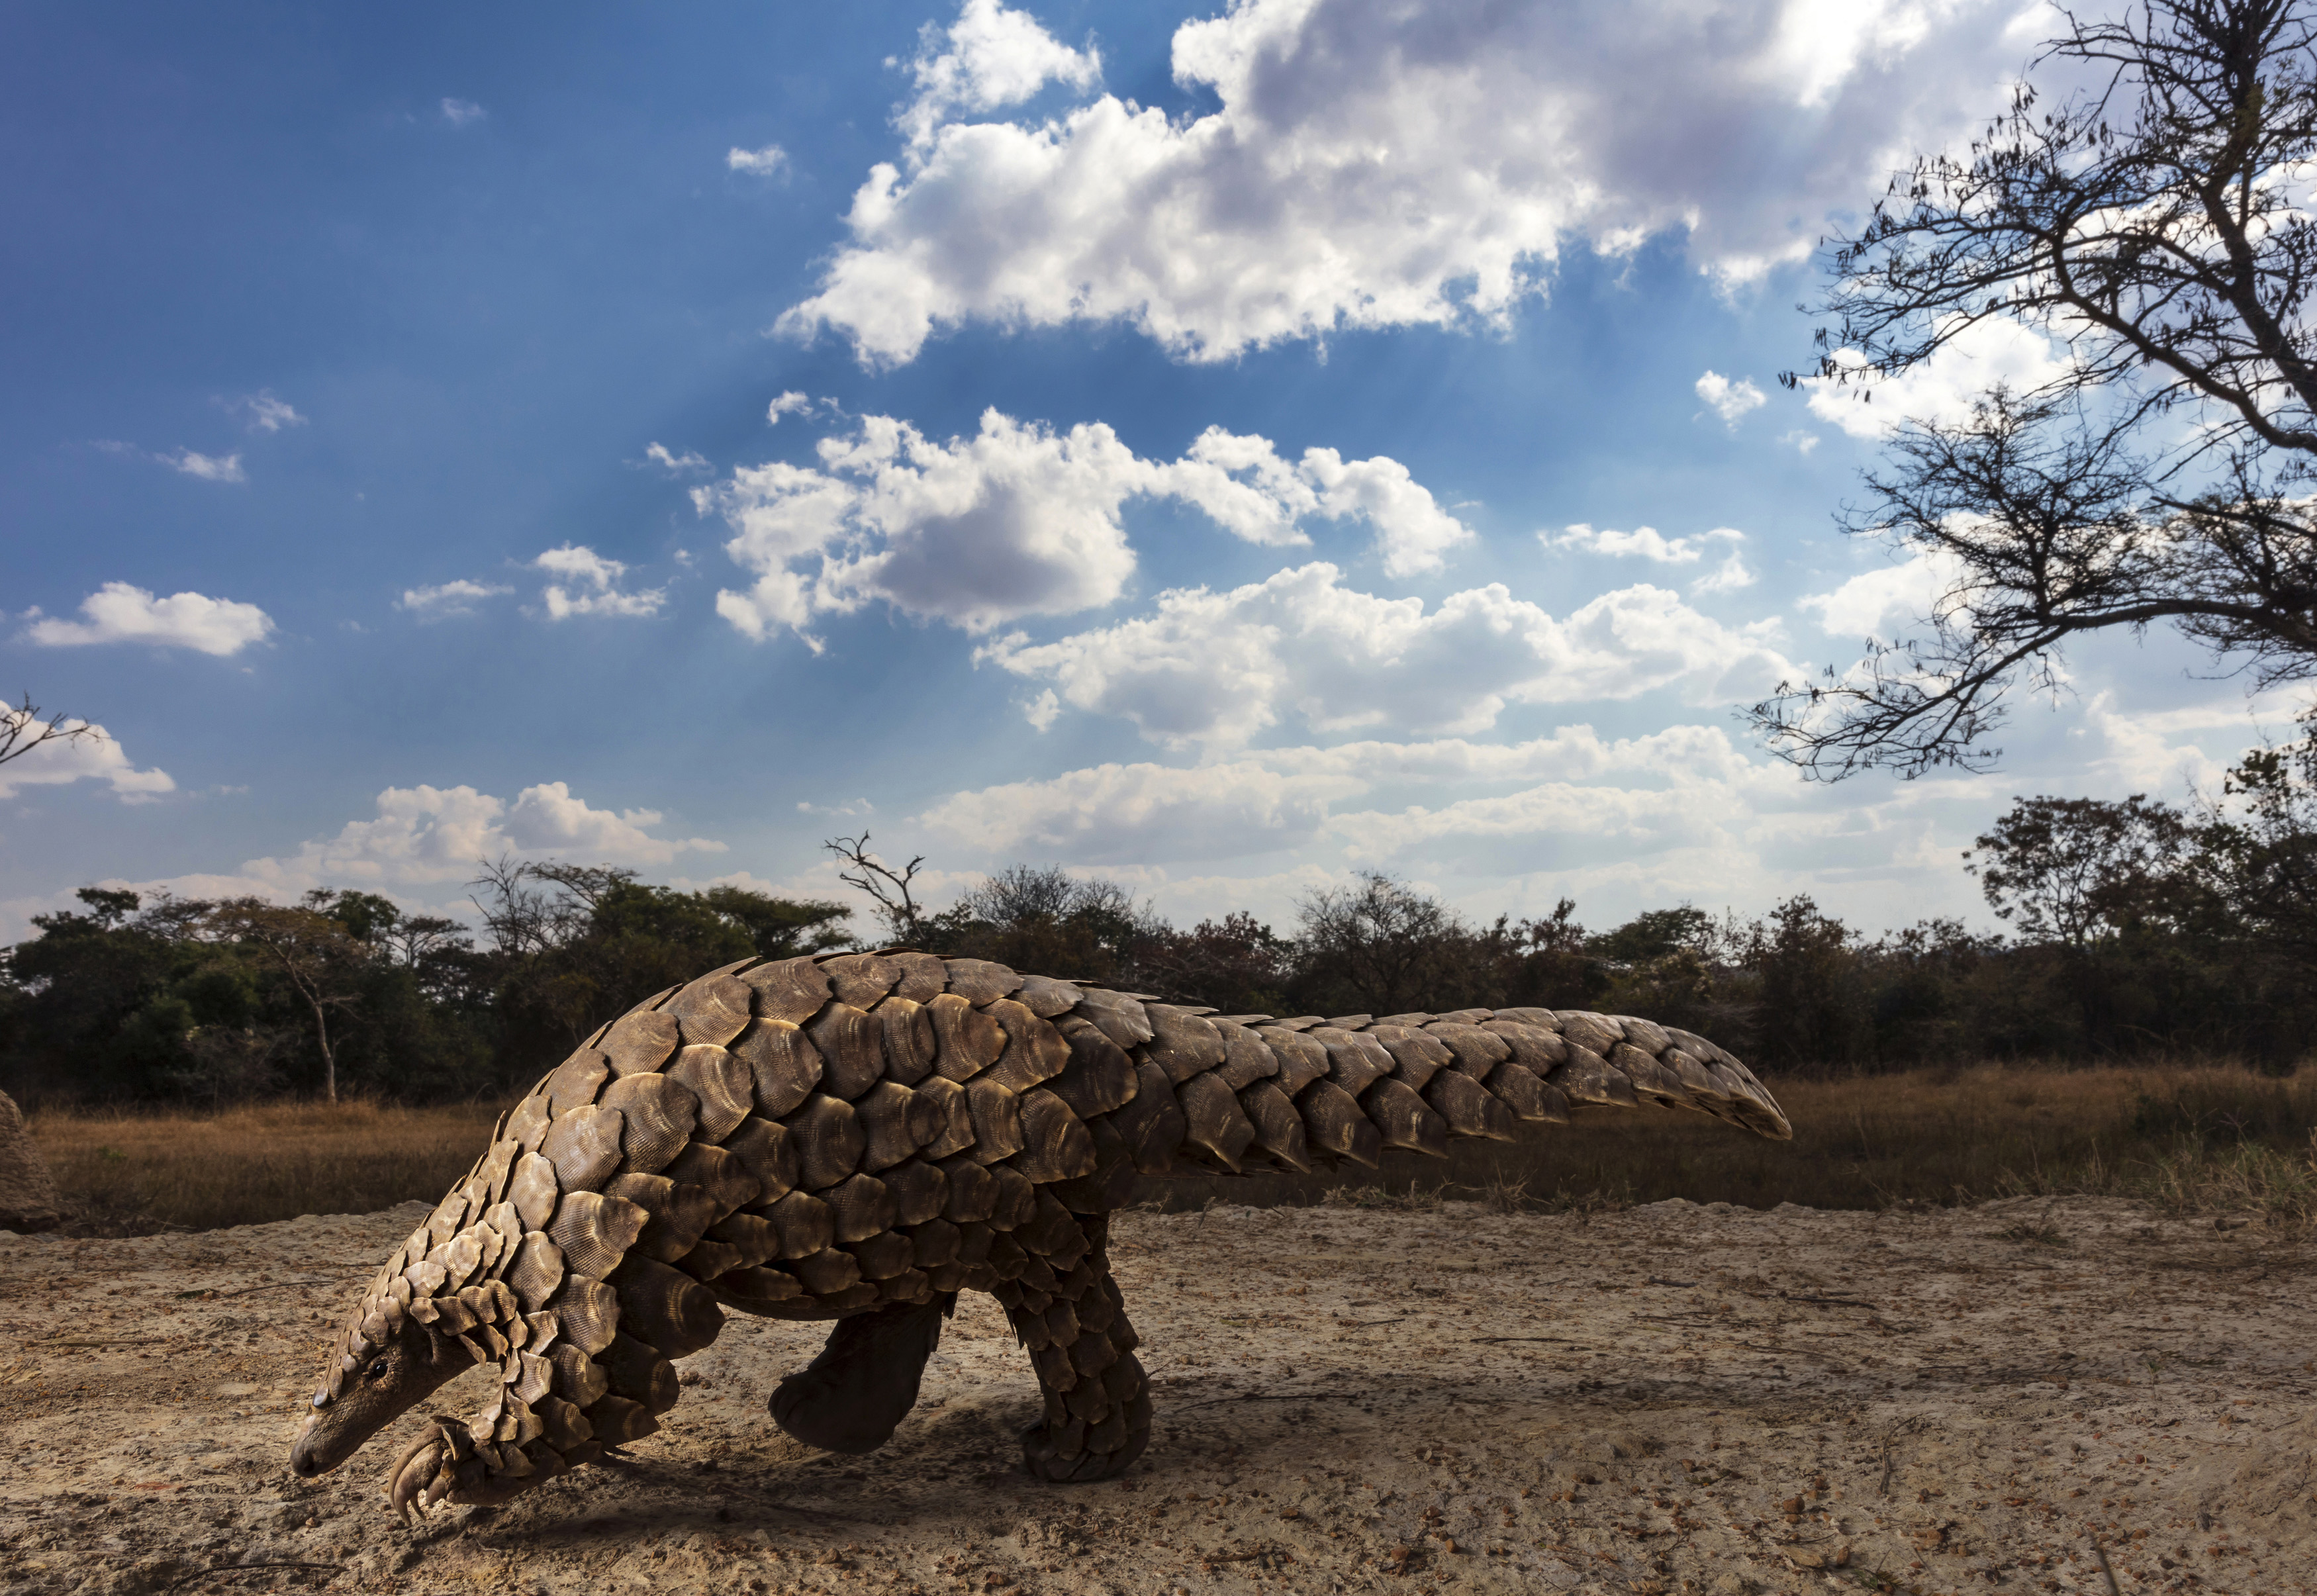 © Brent Stirton, South Africa, Category Winner, Professional, Natural World & Wildlife, 2020 Sony World Photography Awards